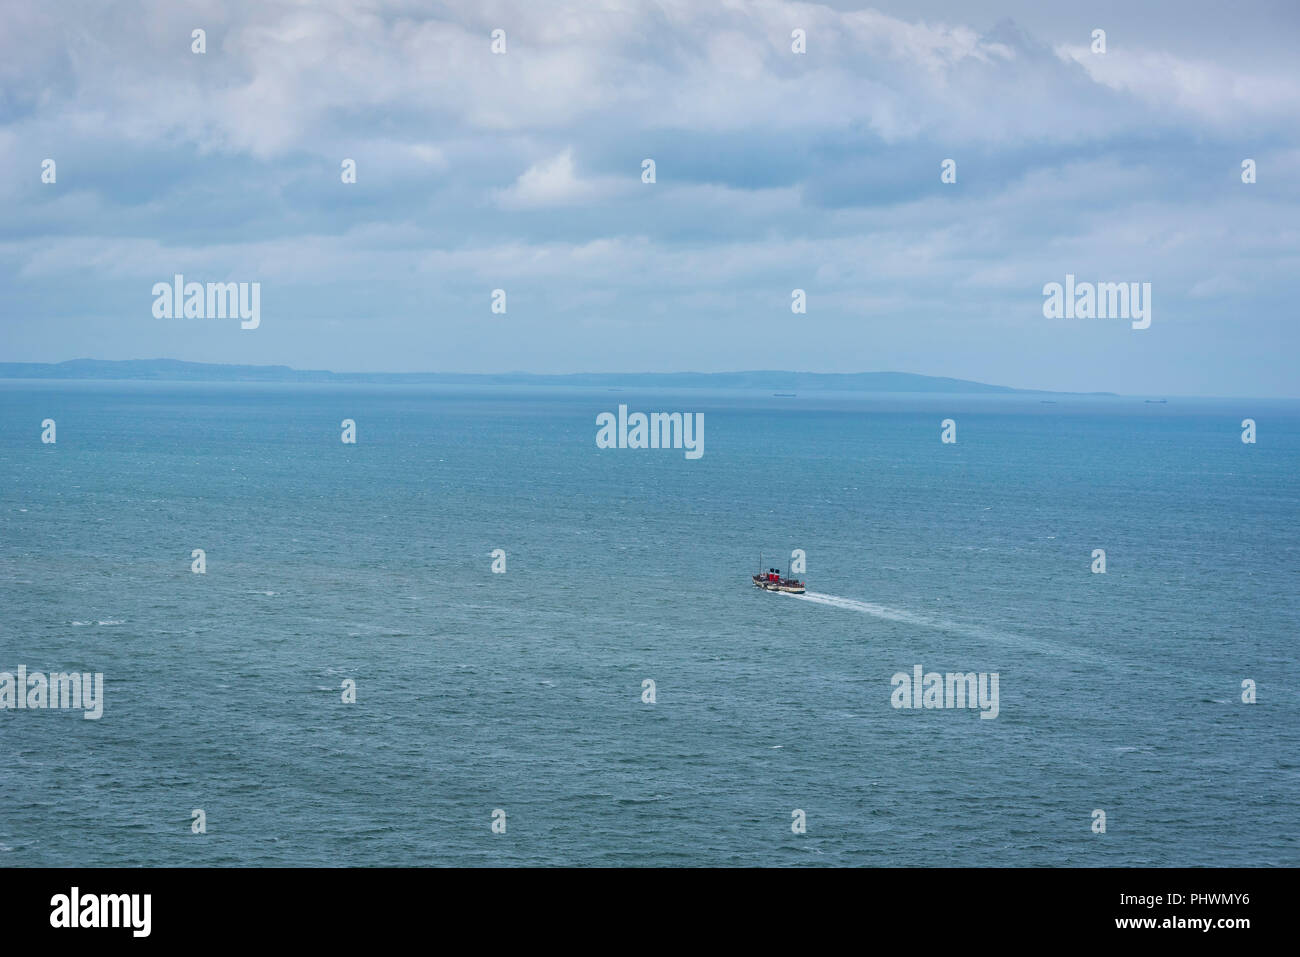 llandudno North Wales. Worlds last seagoing paddle steamer The Waverley. At sea. - Stock Image